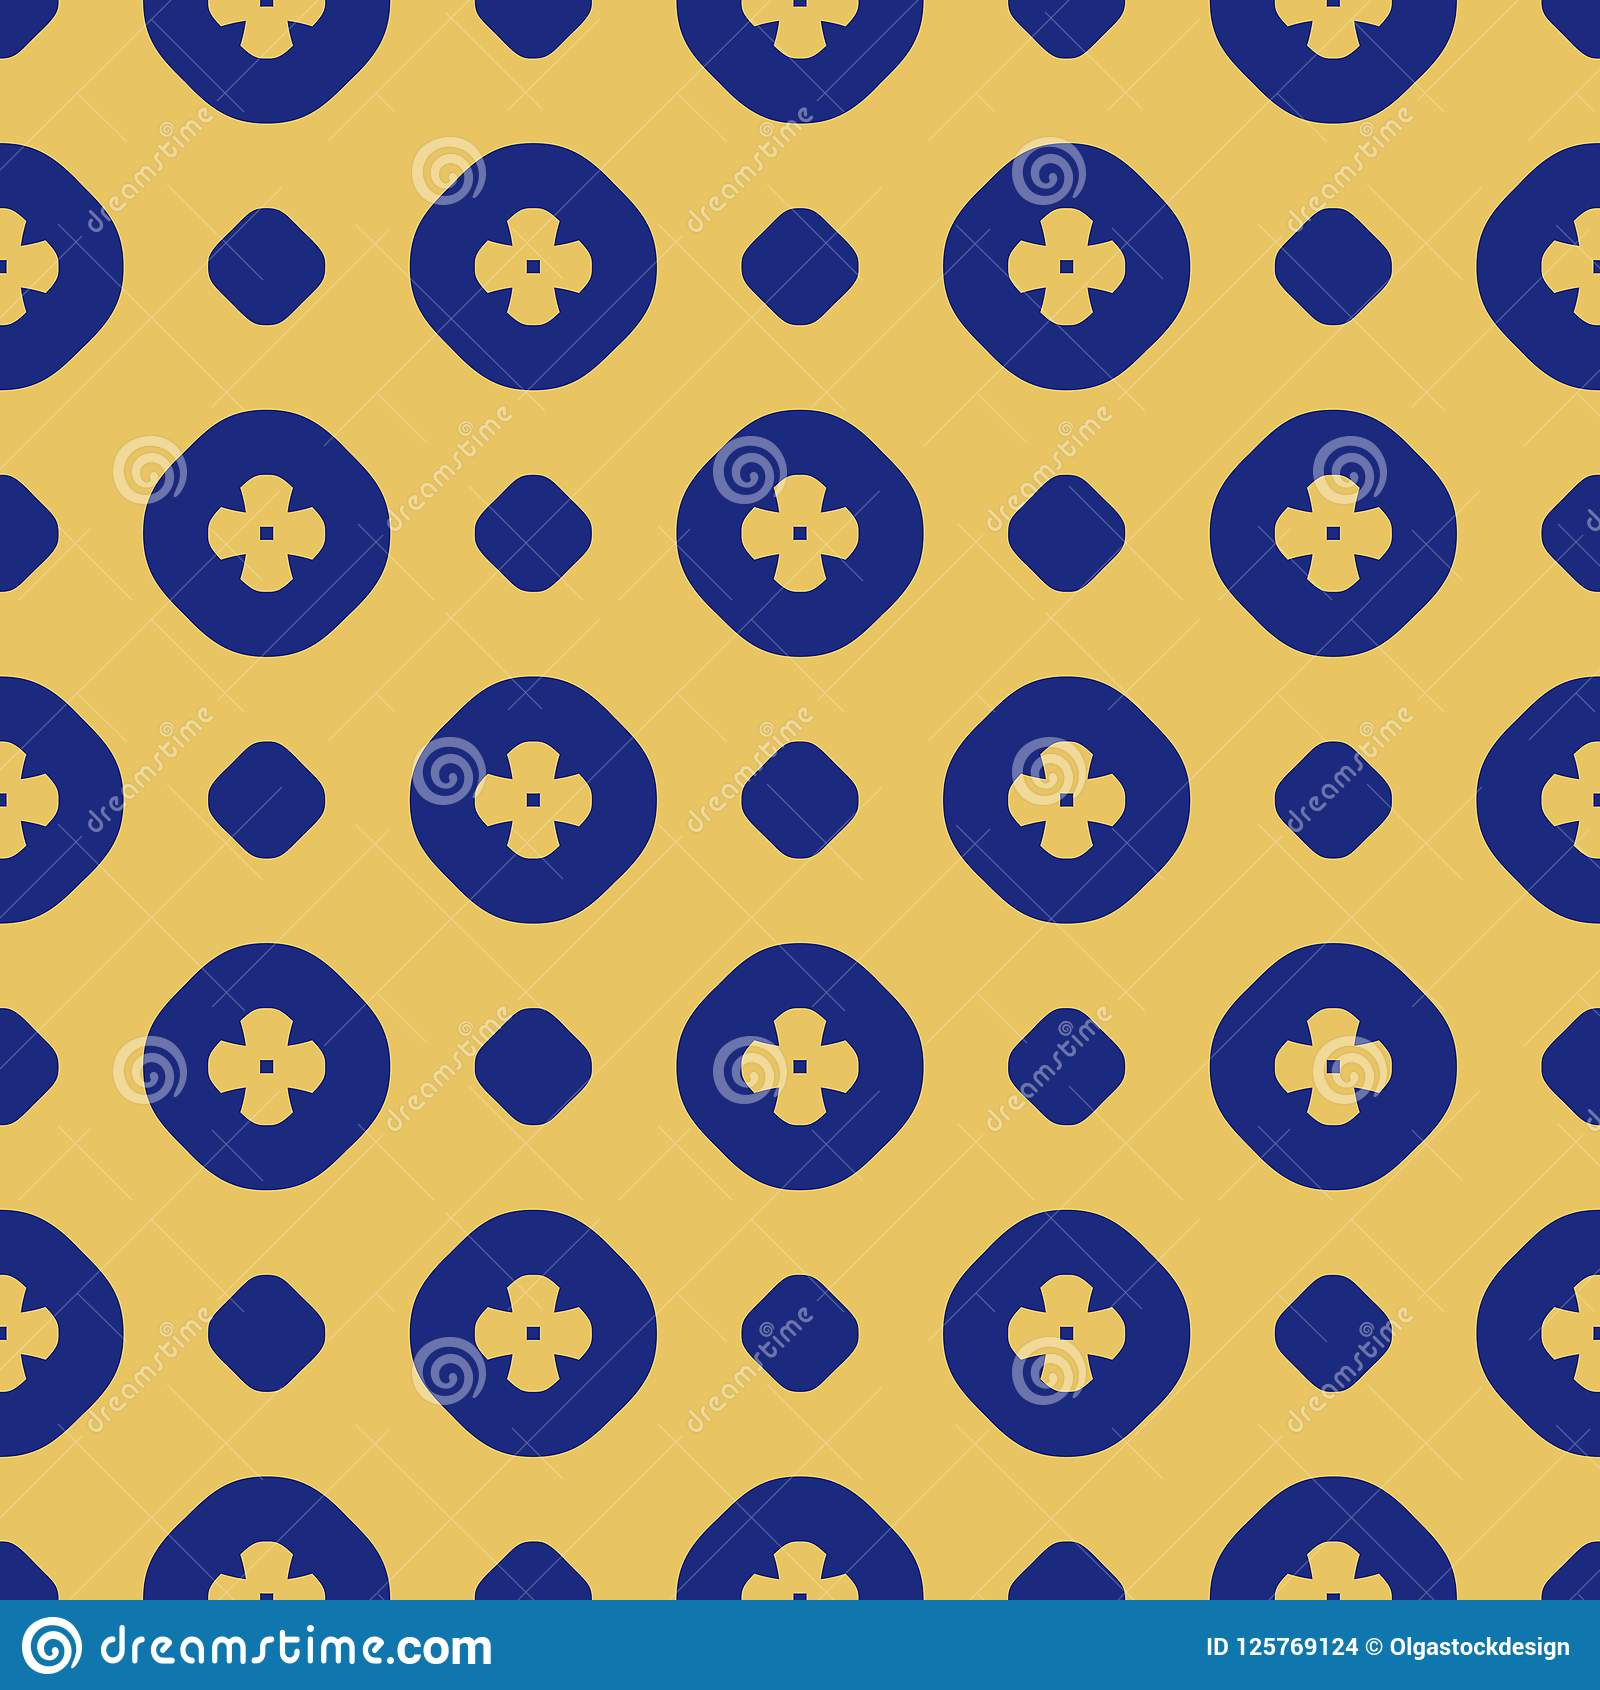 minimal floral background in navy blue and yellow colors stock